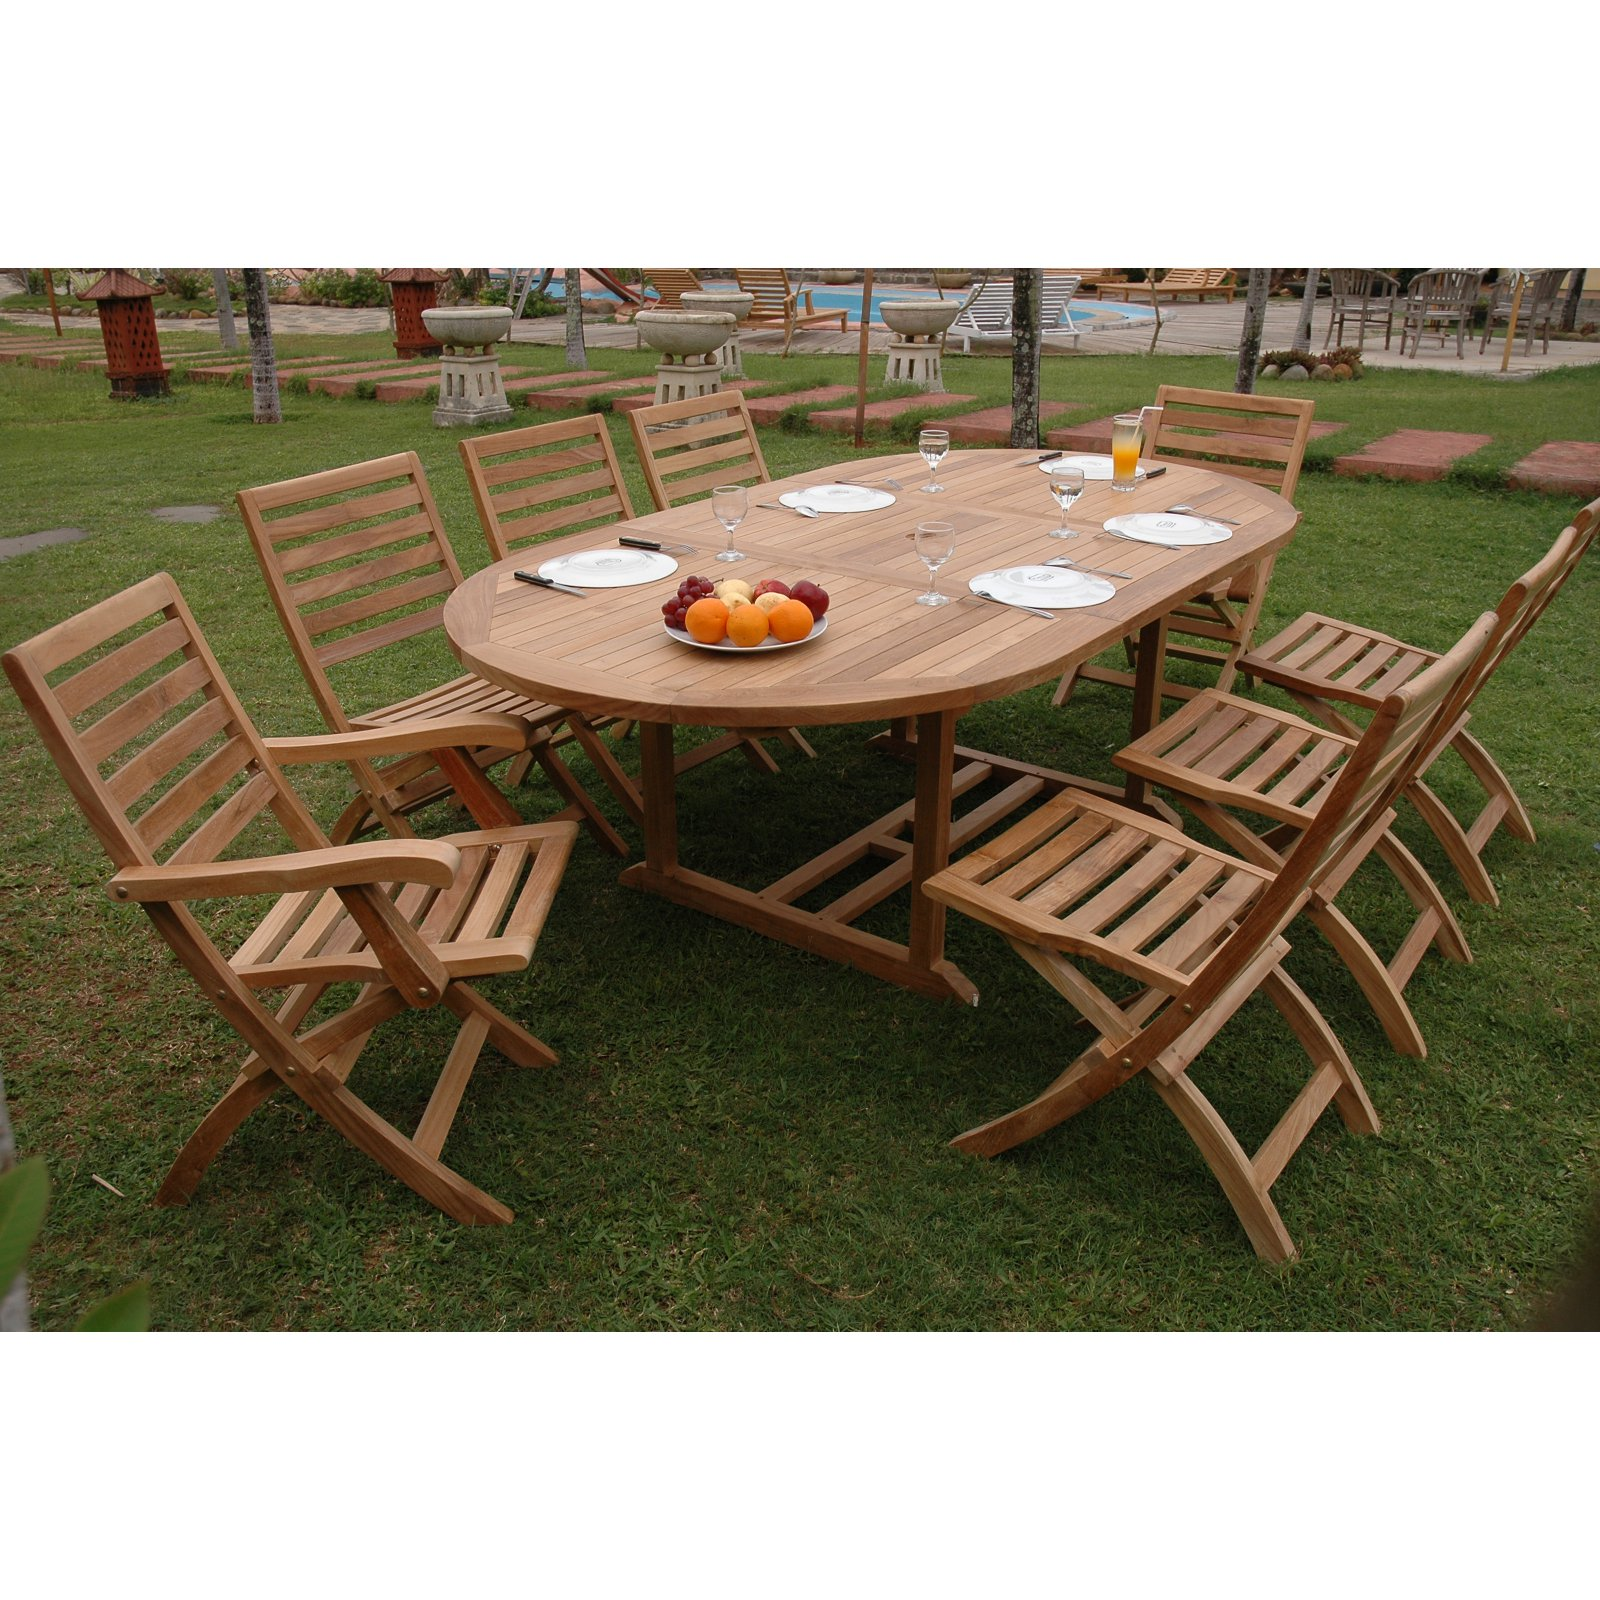 Anderson Teak Andrew 9 Piece Patio Dining Room Set by Anderson